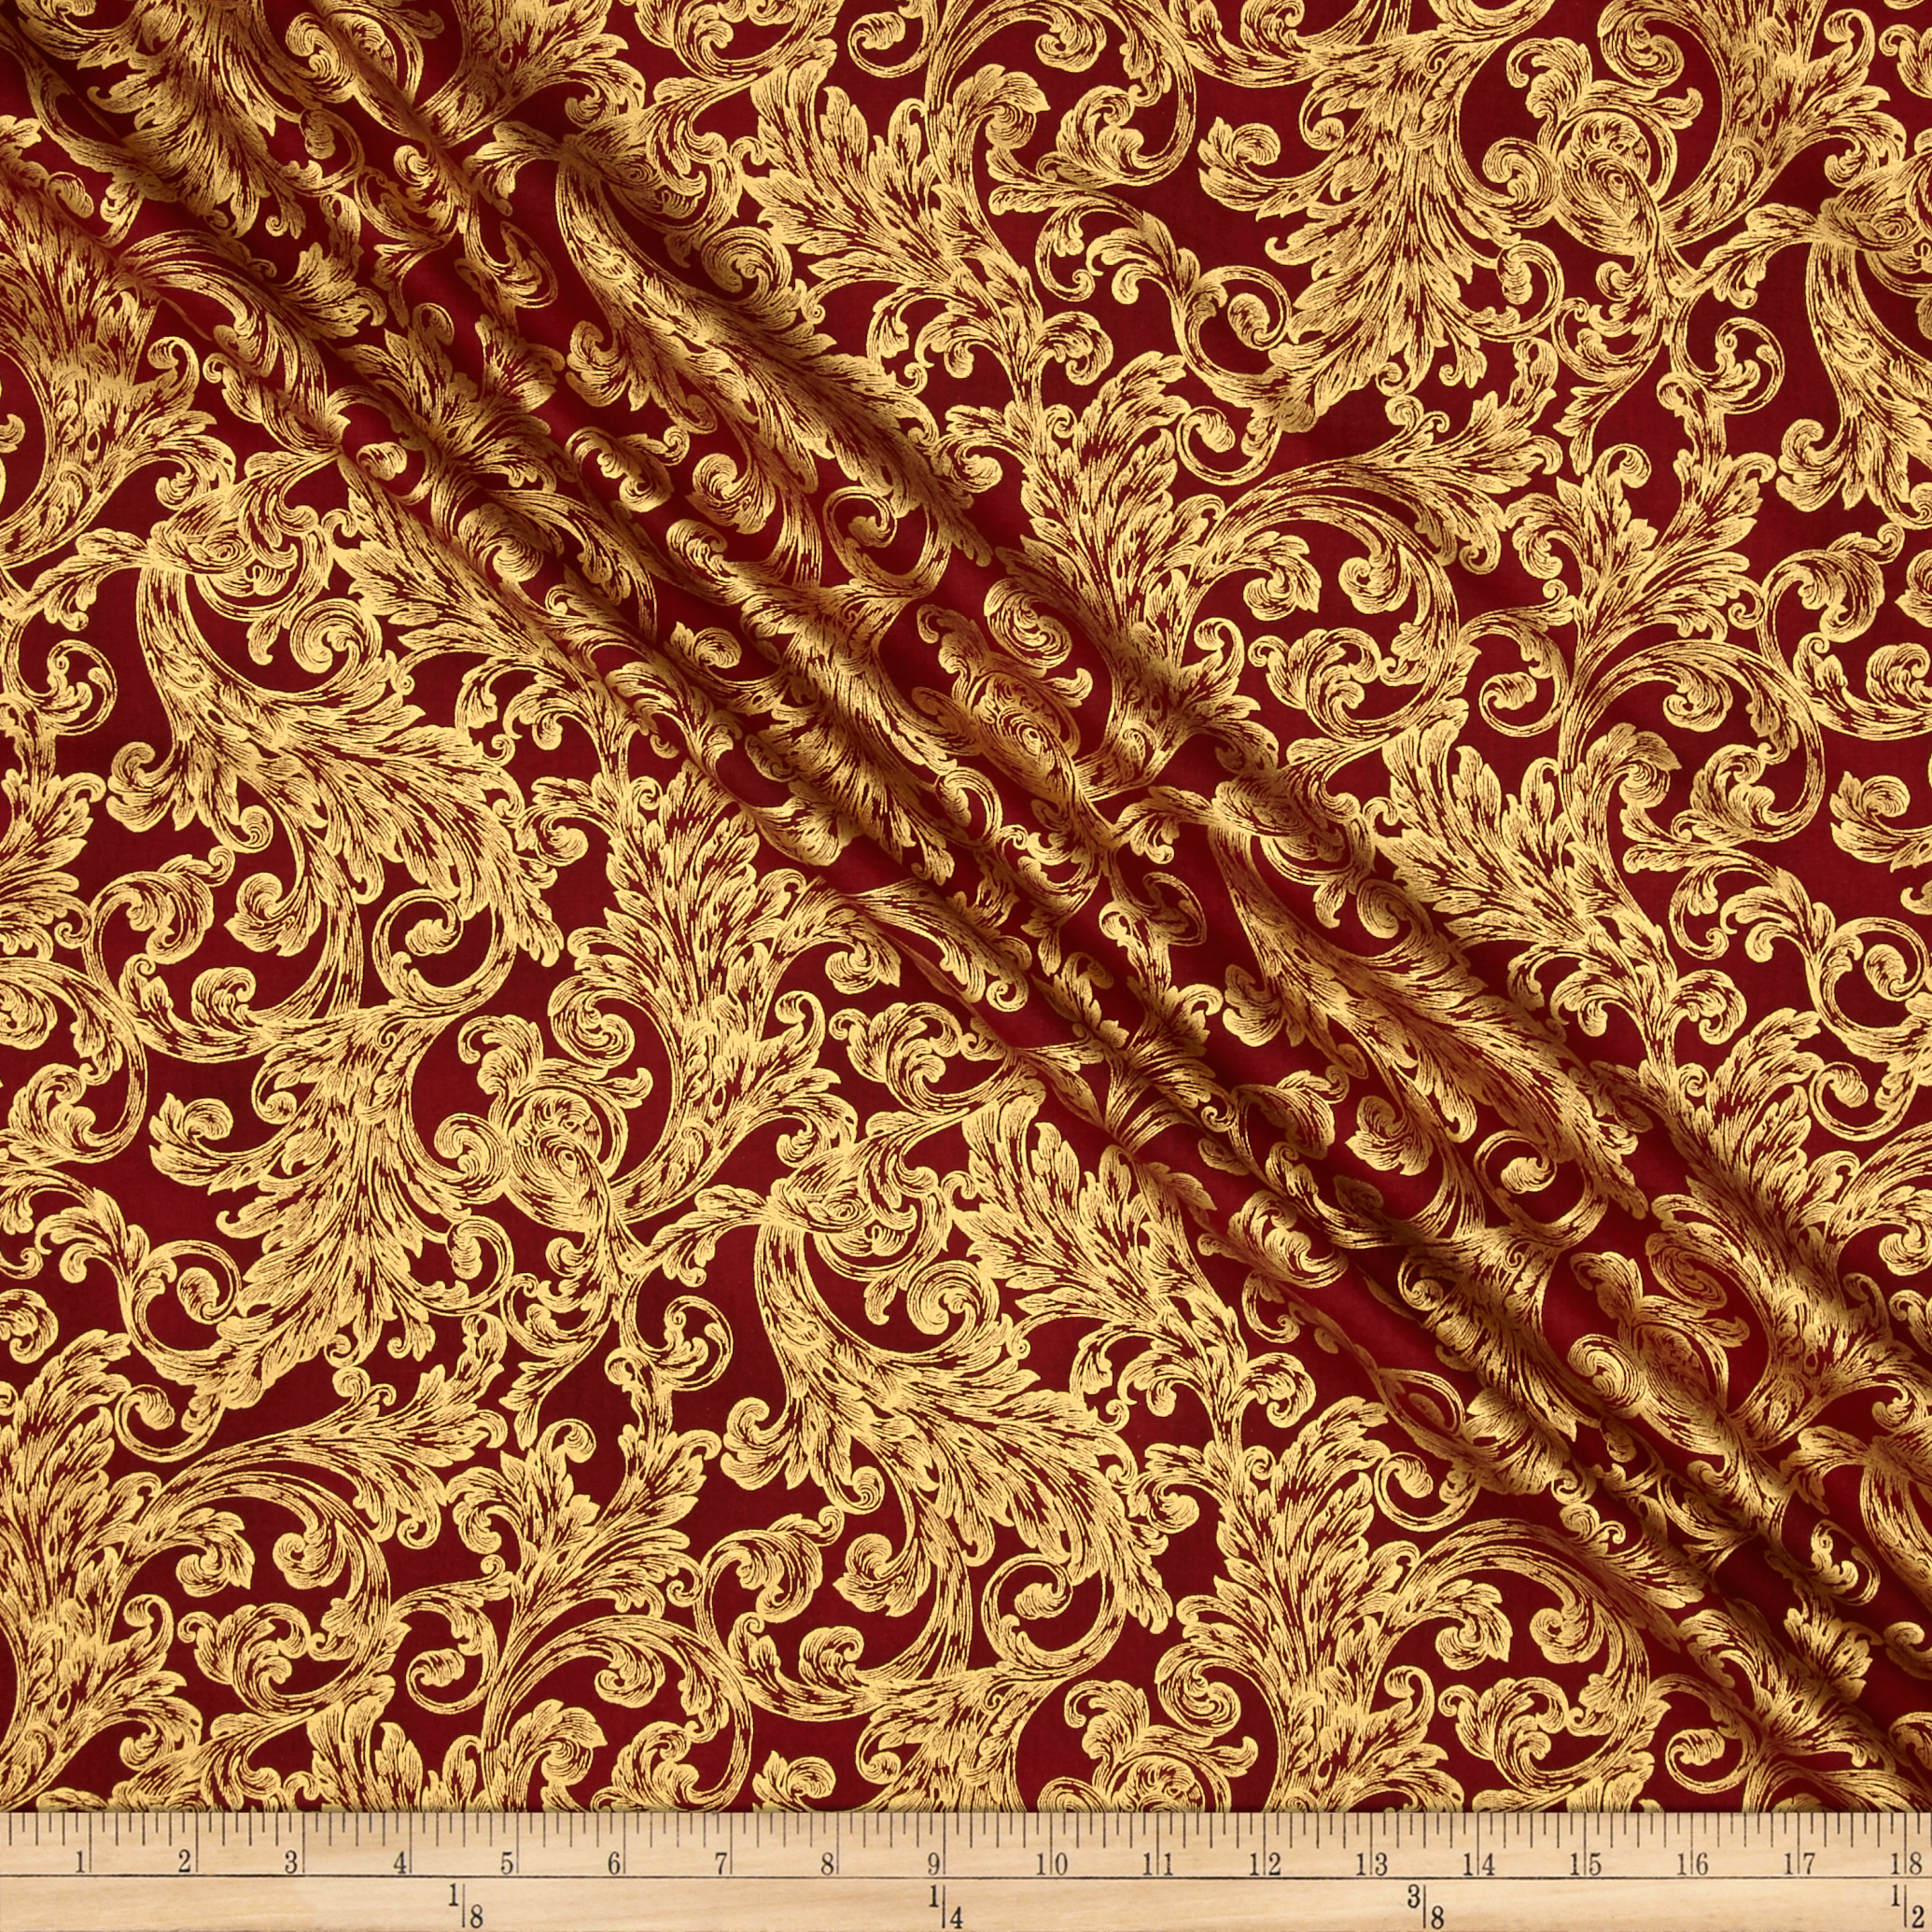 Warm Wishes Metallic Damask Scarlet/Gold Fabric by Hoffman of California in USA